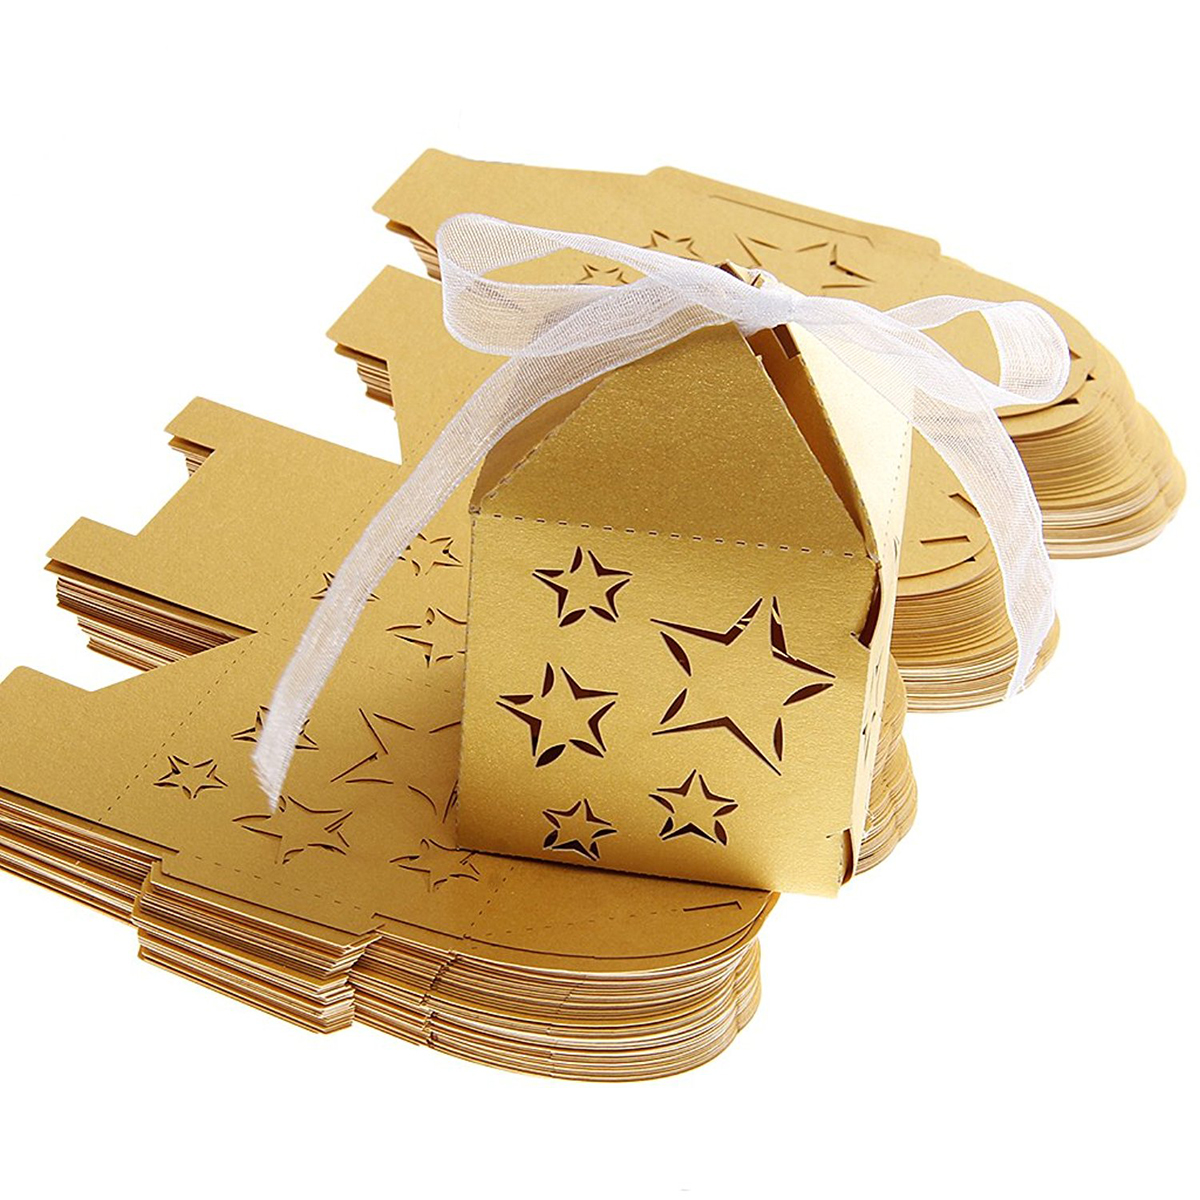 online get cheap paper box pattern com alibaba group 50pcs laser cut star pattern paper candy wedding favor box candy box gift box wedding decoration